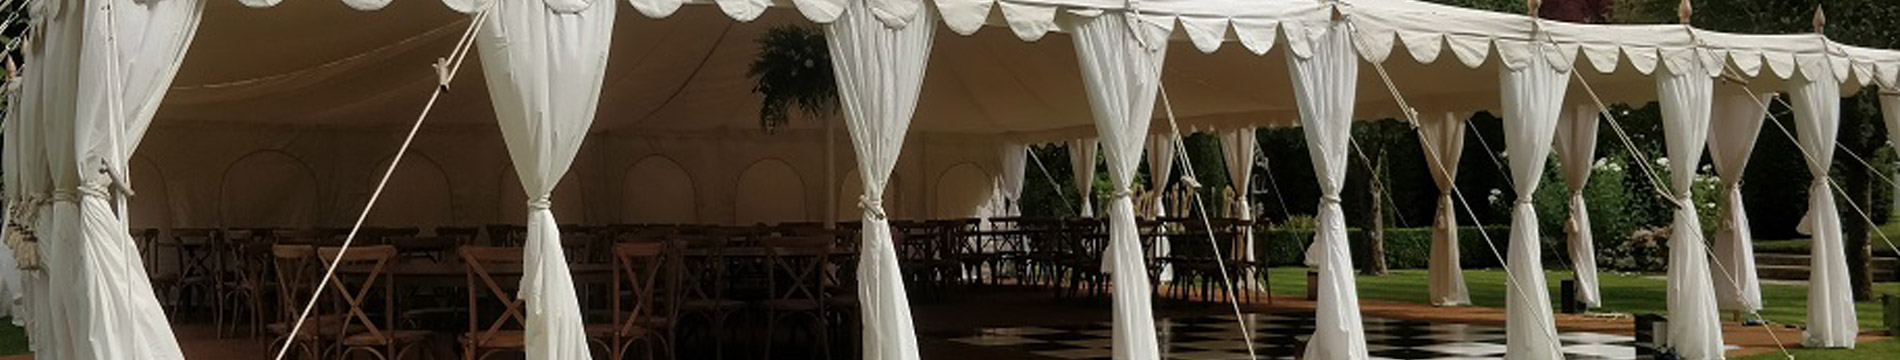 luxury marquee hire for wedding  events